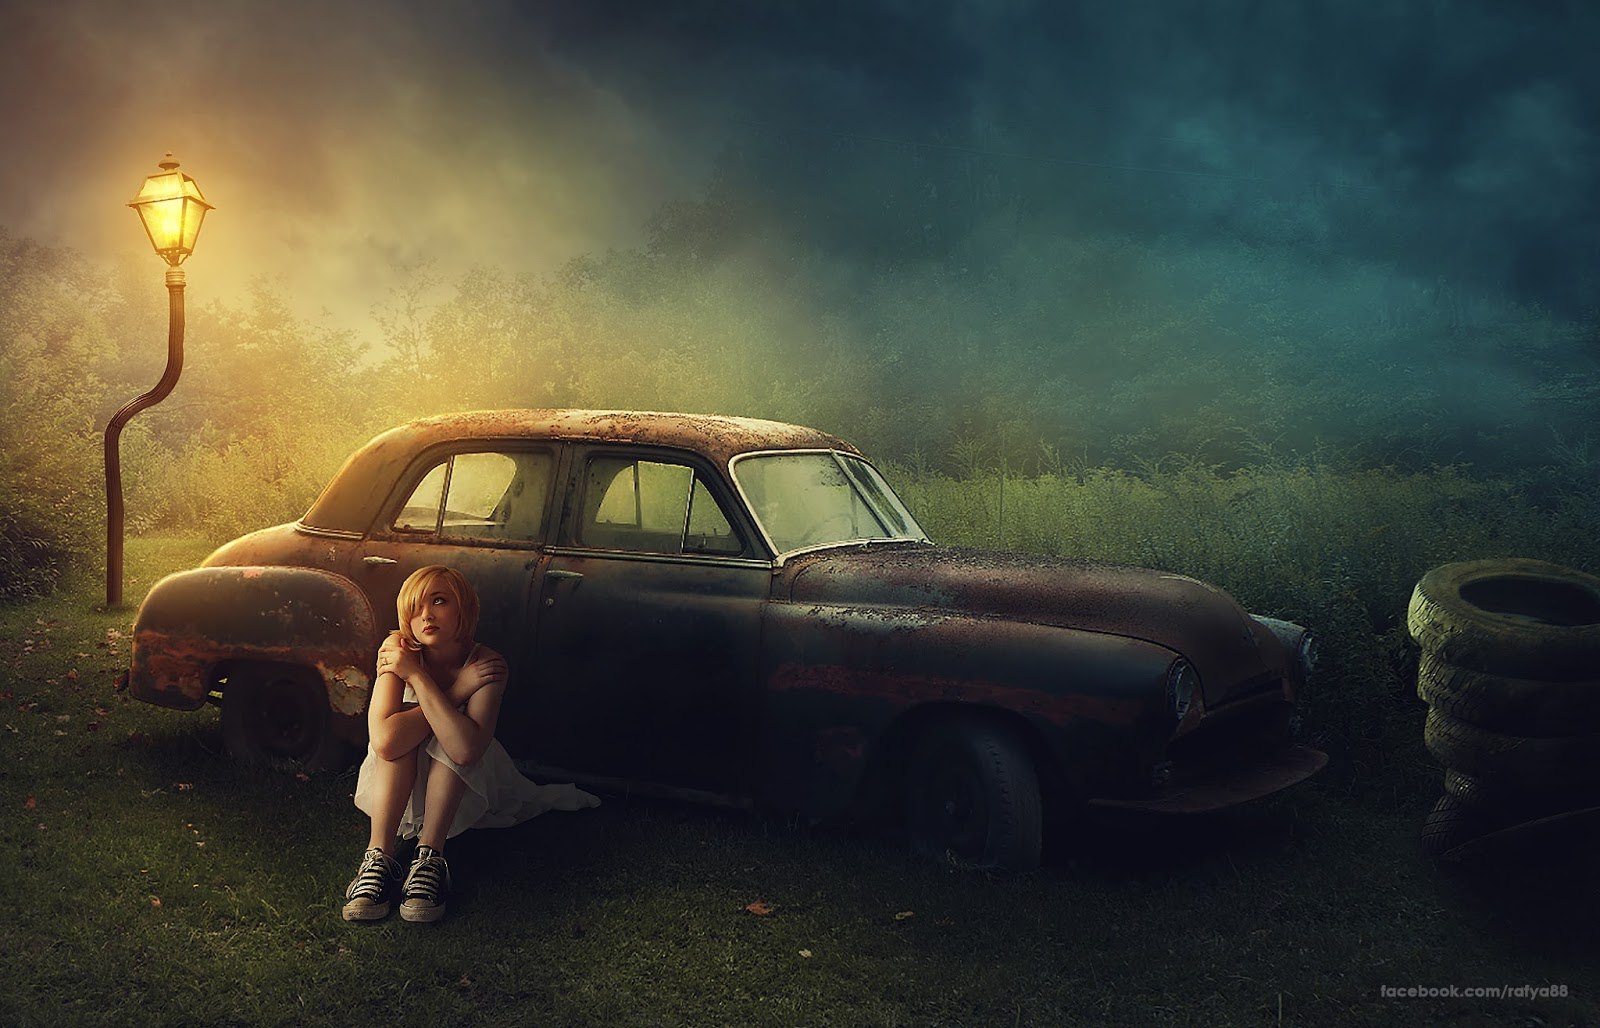 Photo editing service effects in photoshop tutorials